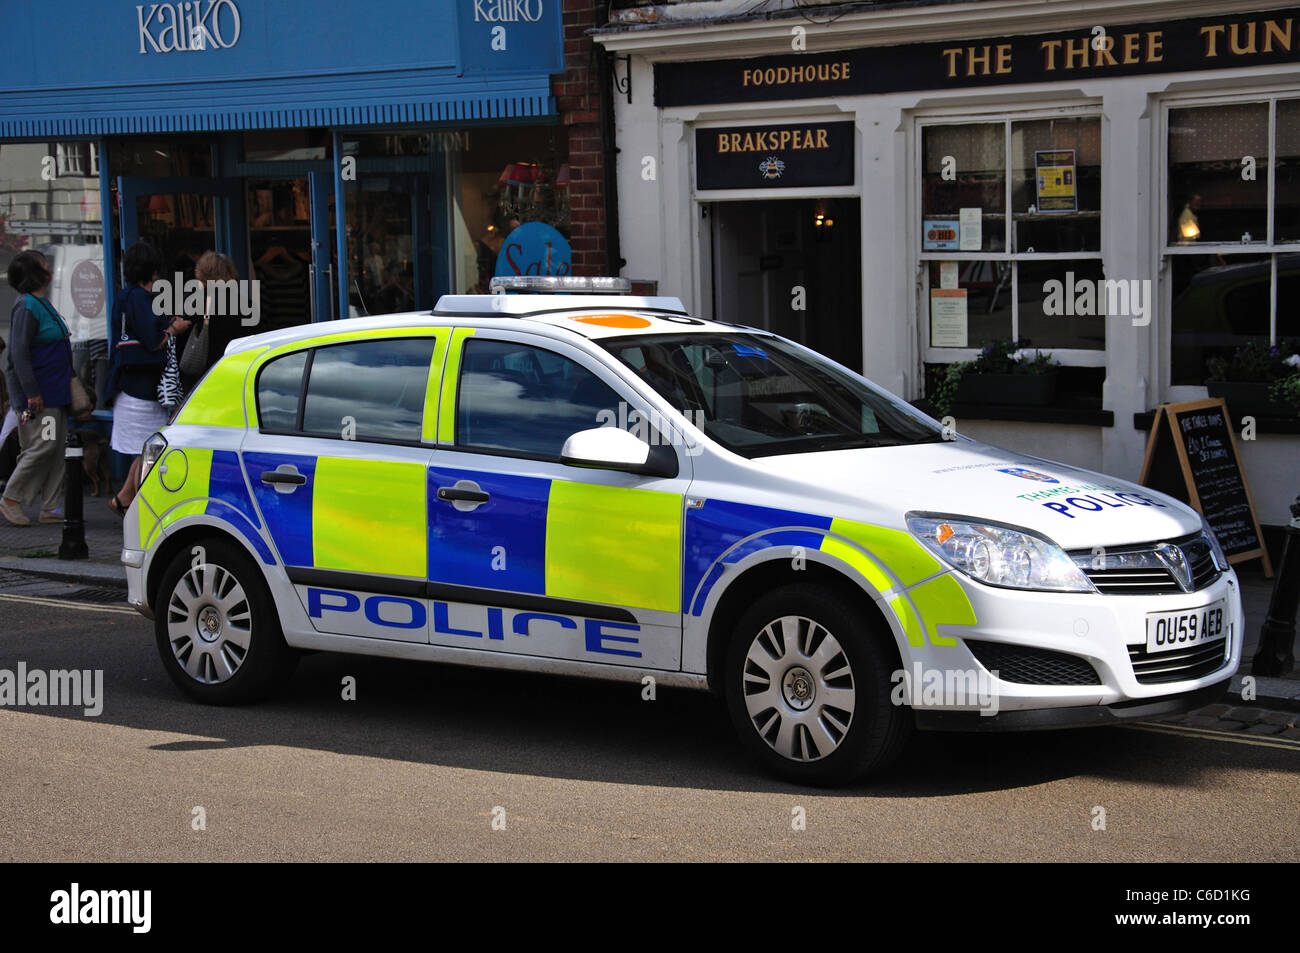 Police car parked in Market Place, Henley-on-Thames, Oxfordshire, England, United Kingdom - Stock Image